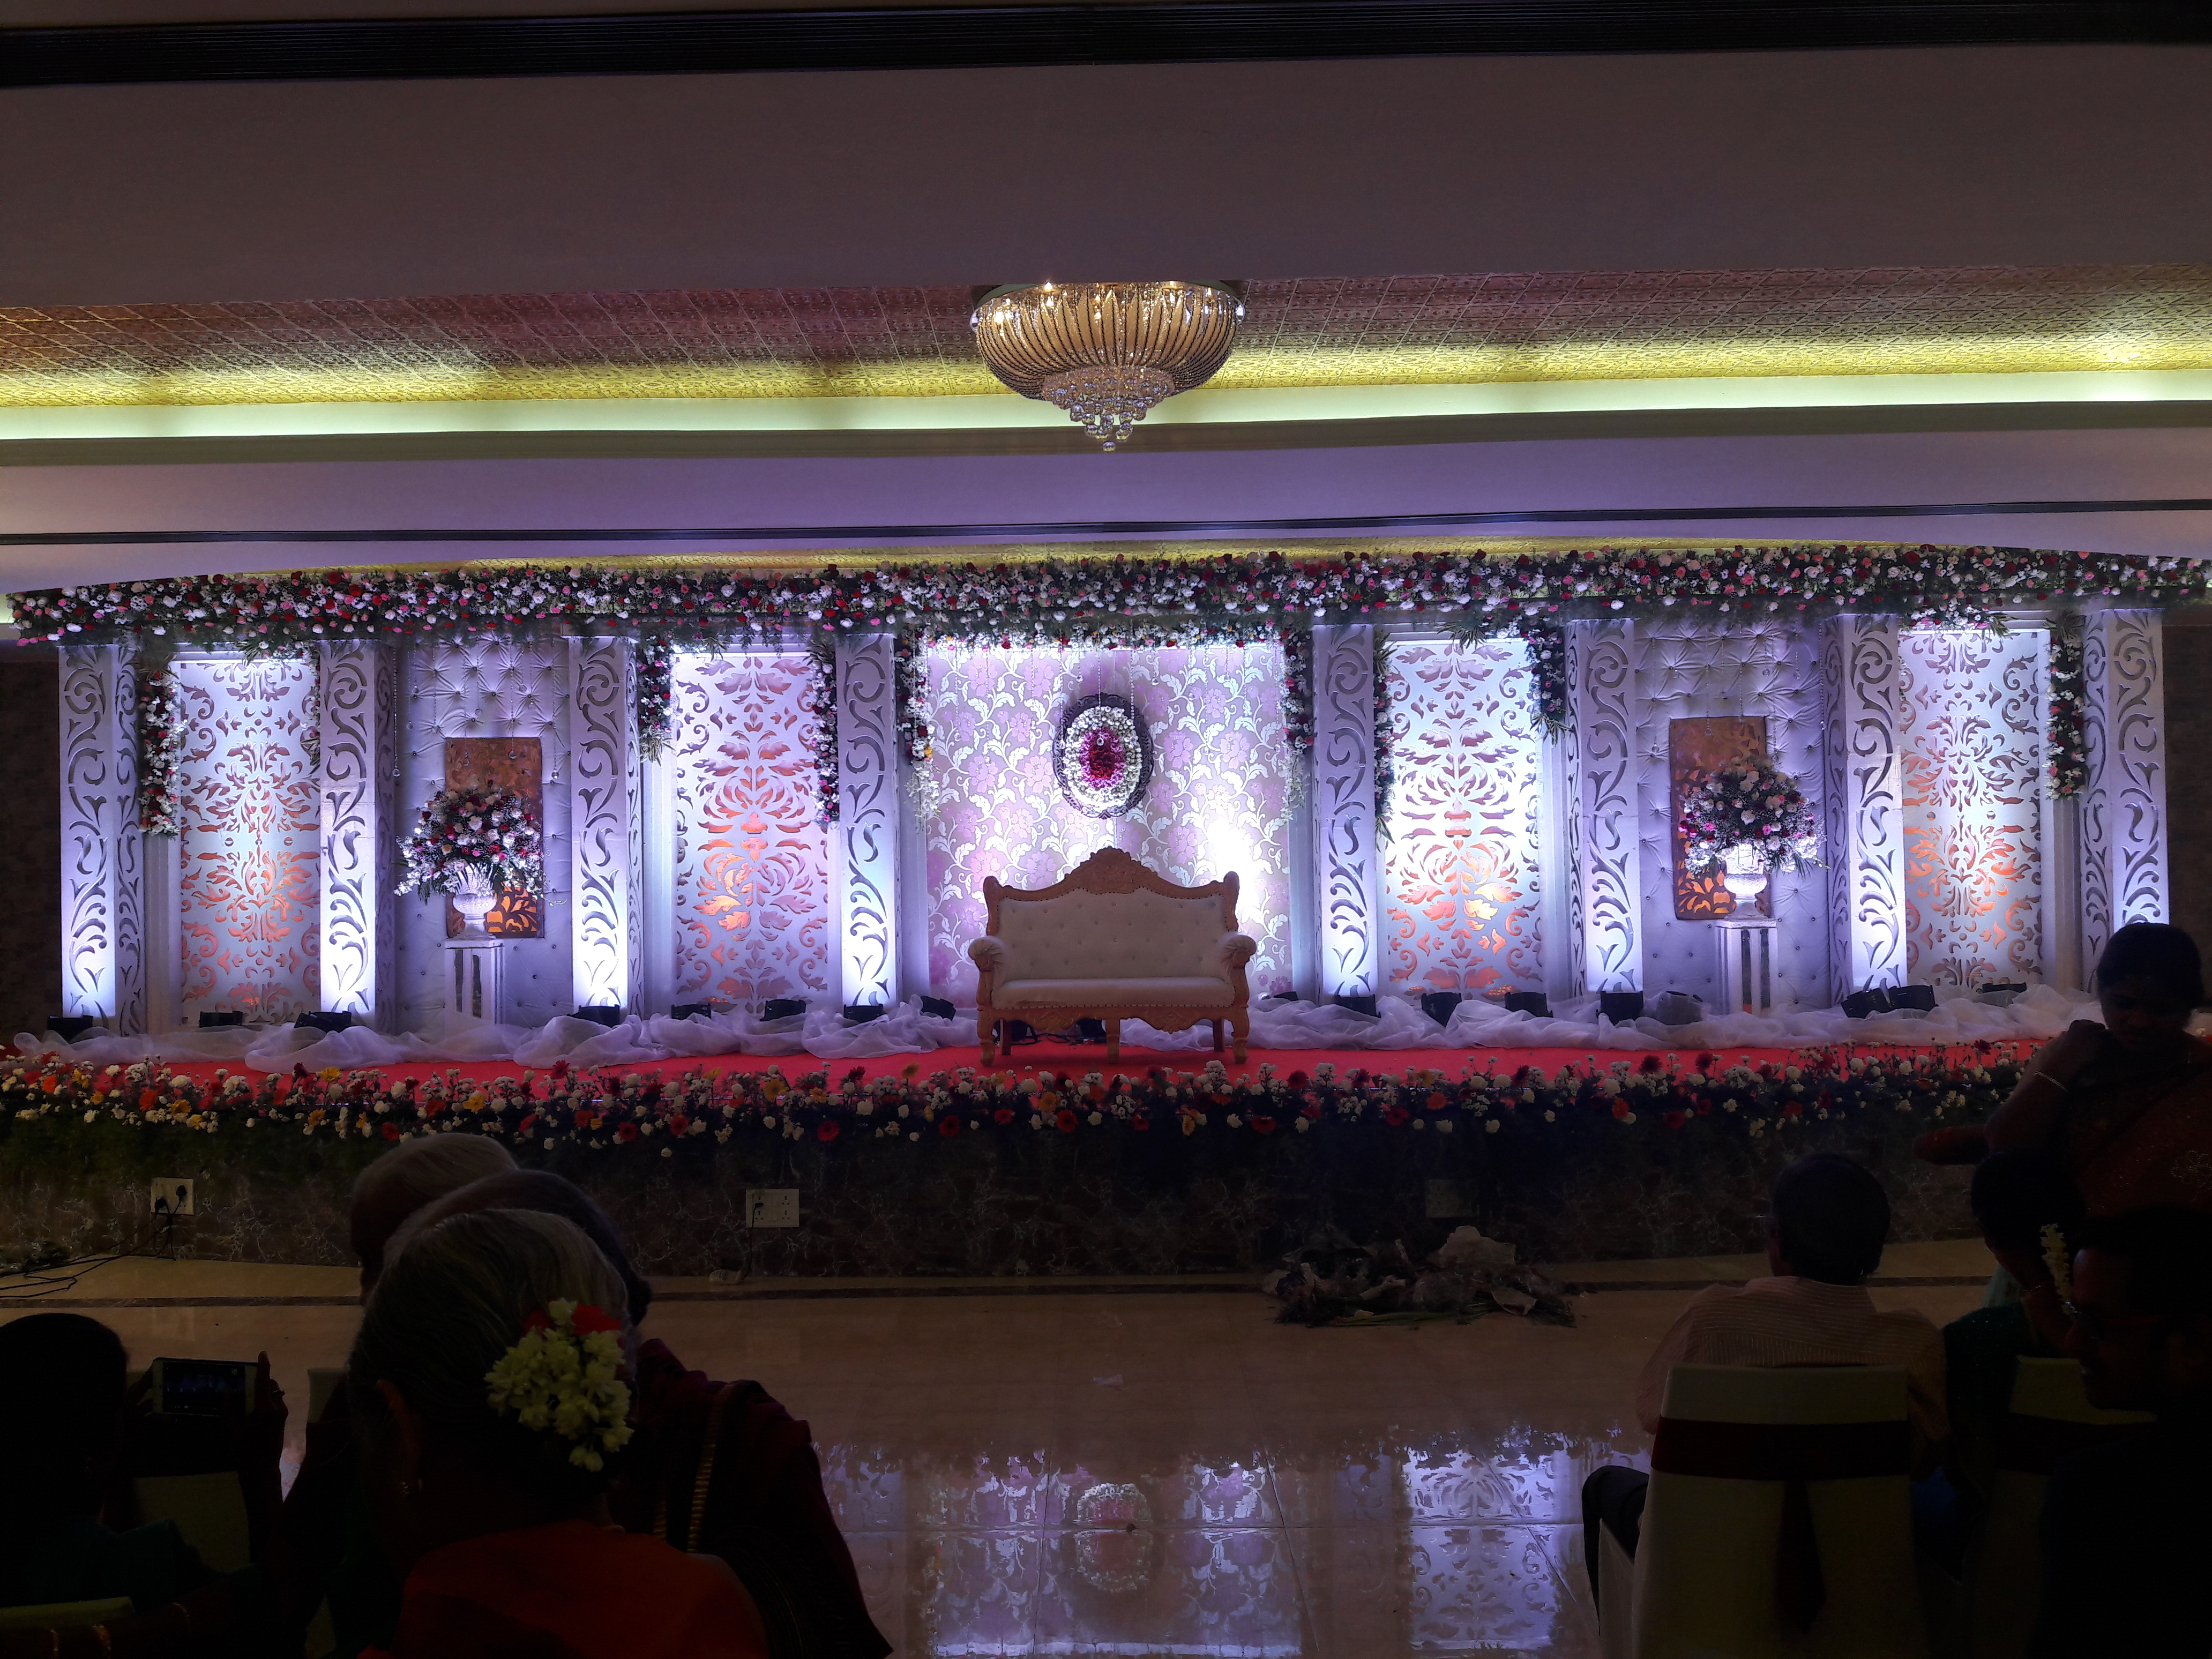 Leela palace wedding decoration in chennai mobile no9790999569 by classic events decors leela palace wedding decorators in chennaiwestin wedding decorator in junglespirit Gallery